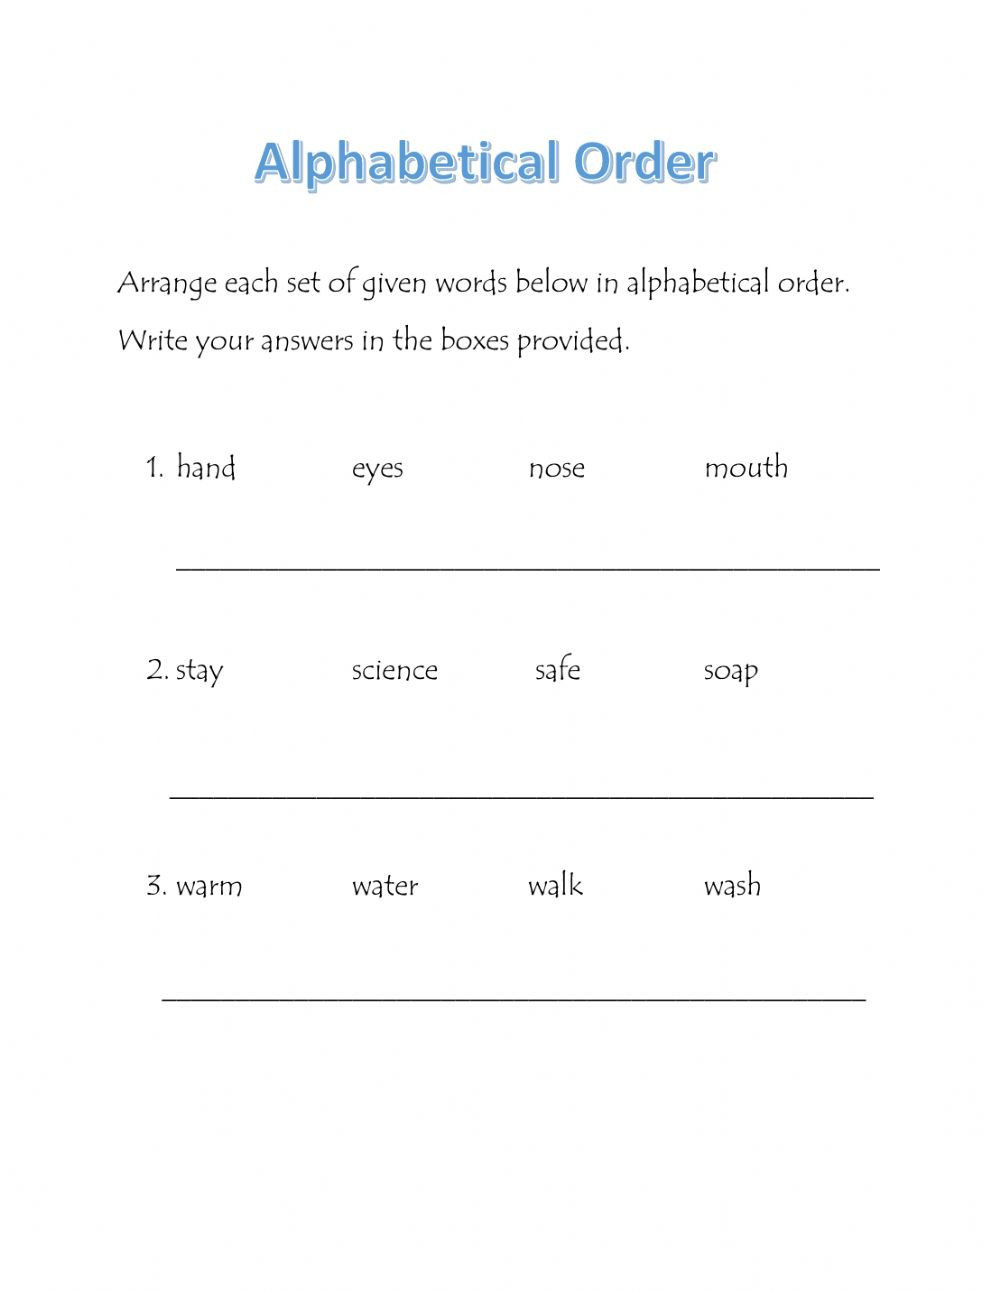 Alphabetizing Worksheets for Grade 1 Alphabetical order Interactive Worksheet